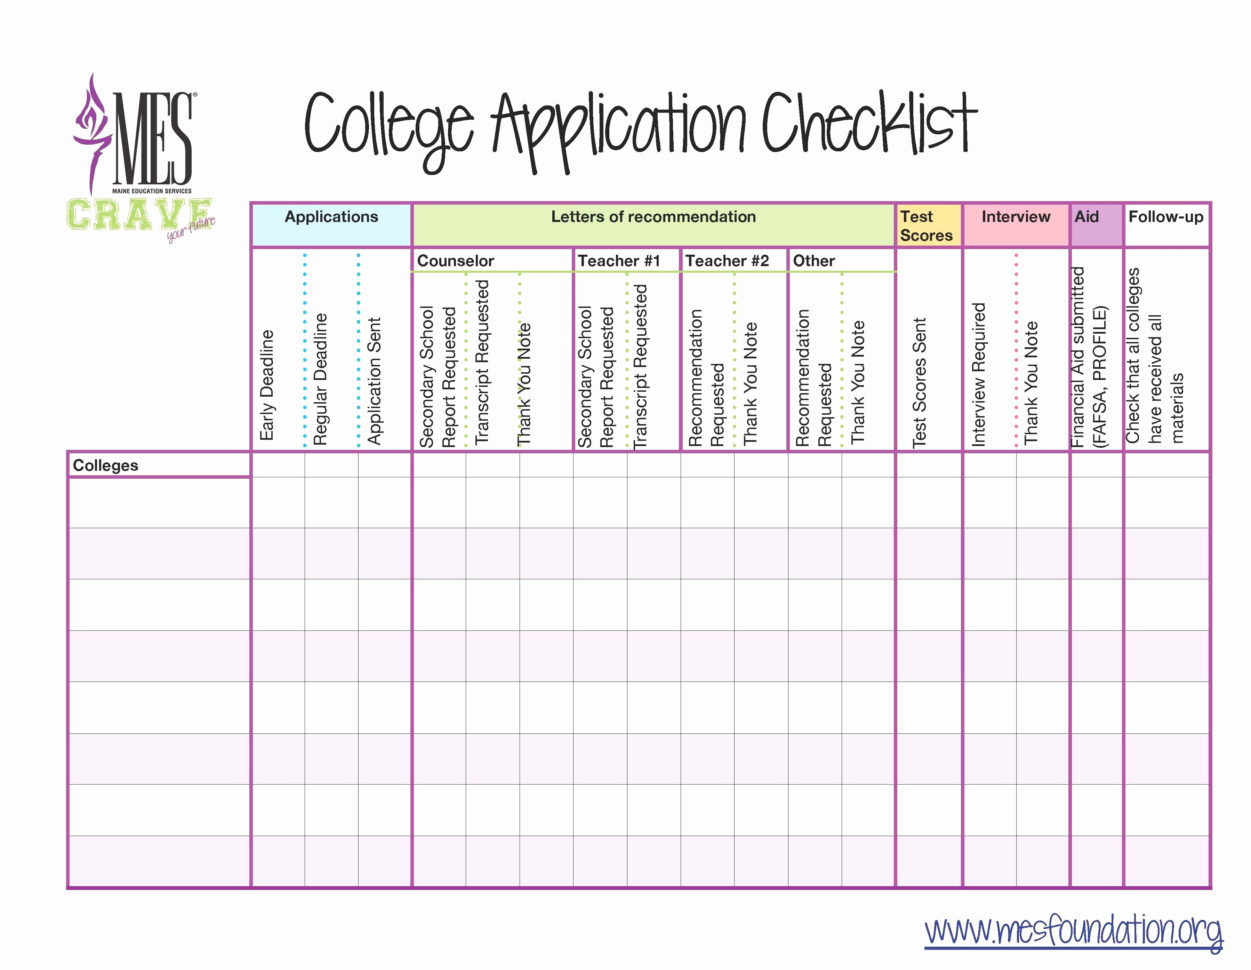 College Application Checklist Spreadsheet For Sheet Collegecation Checklist Spreadsheet Maggi Locustdesign Co New